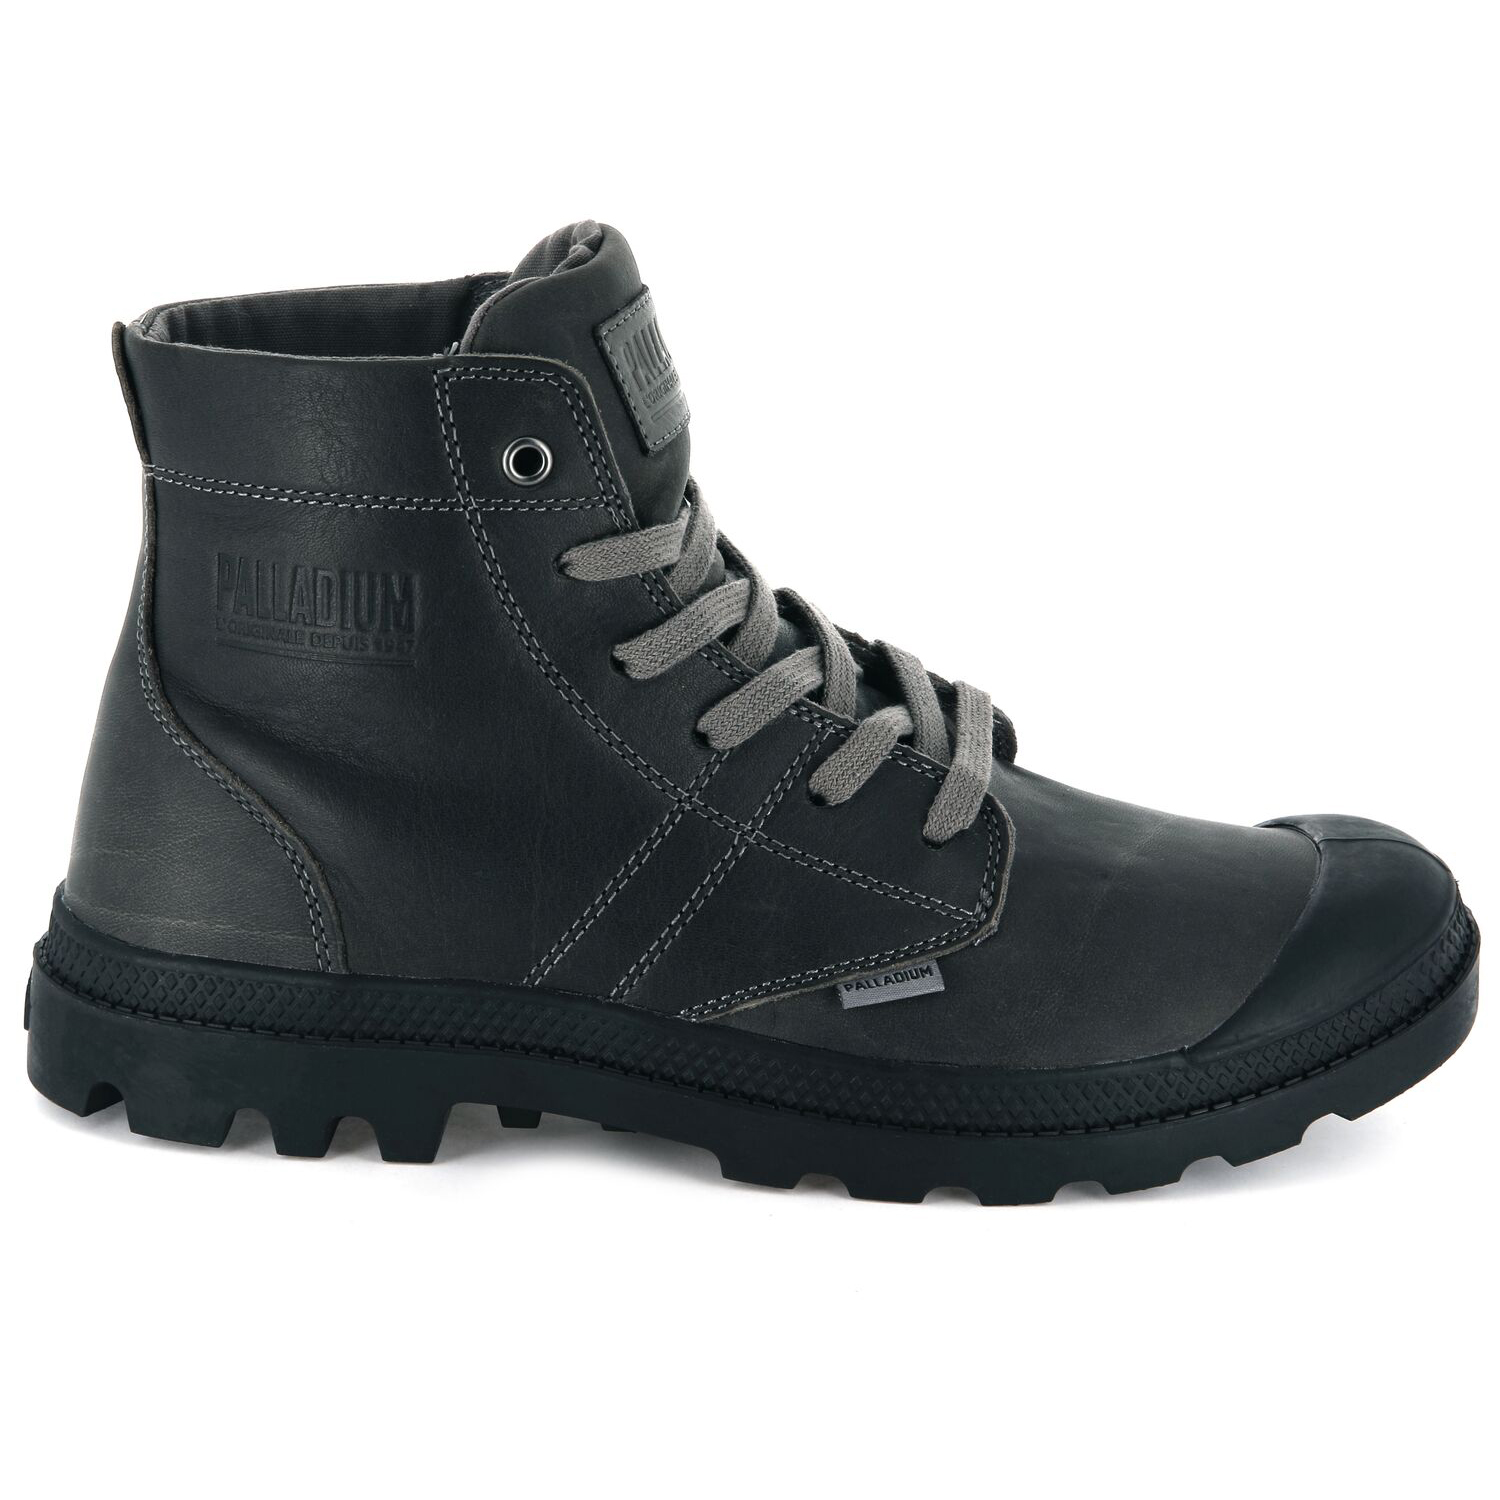 Palladium-Mens-Pallabrousse-Leather-Lace-Up-Boots-Walking-Chukka-Ankle-Shoes thumbnail 8